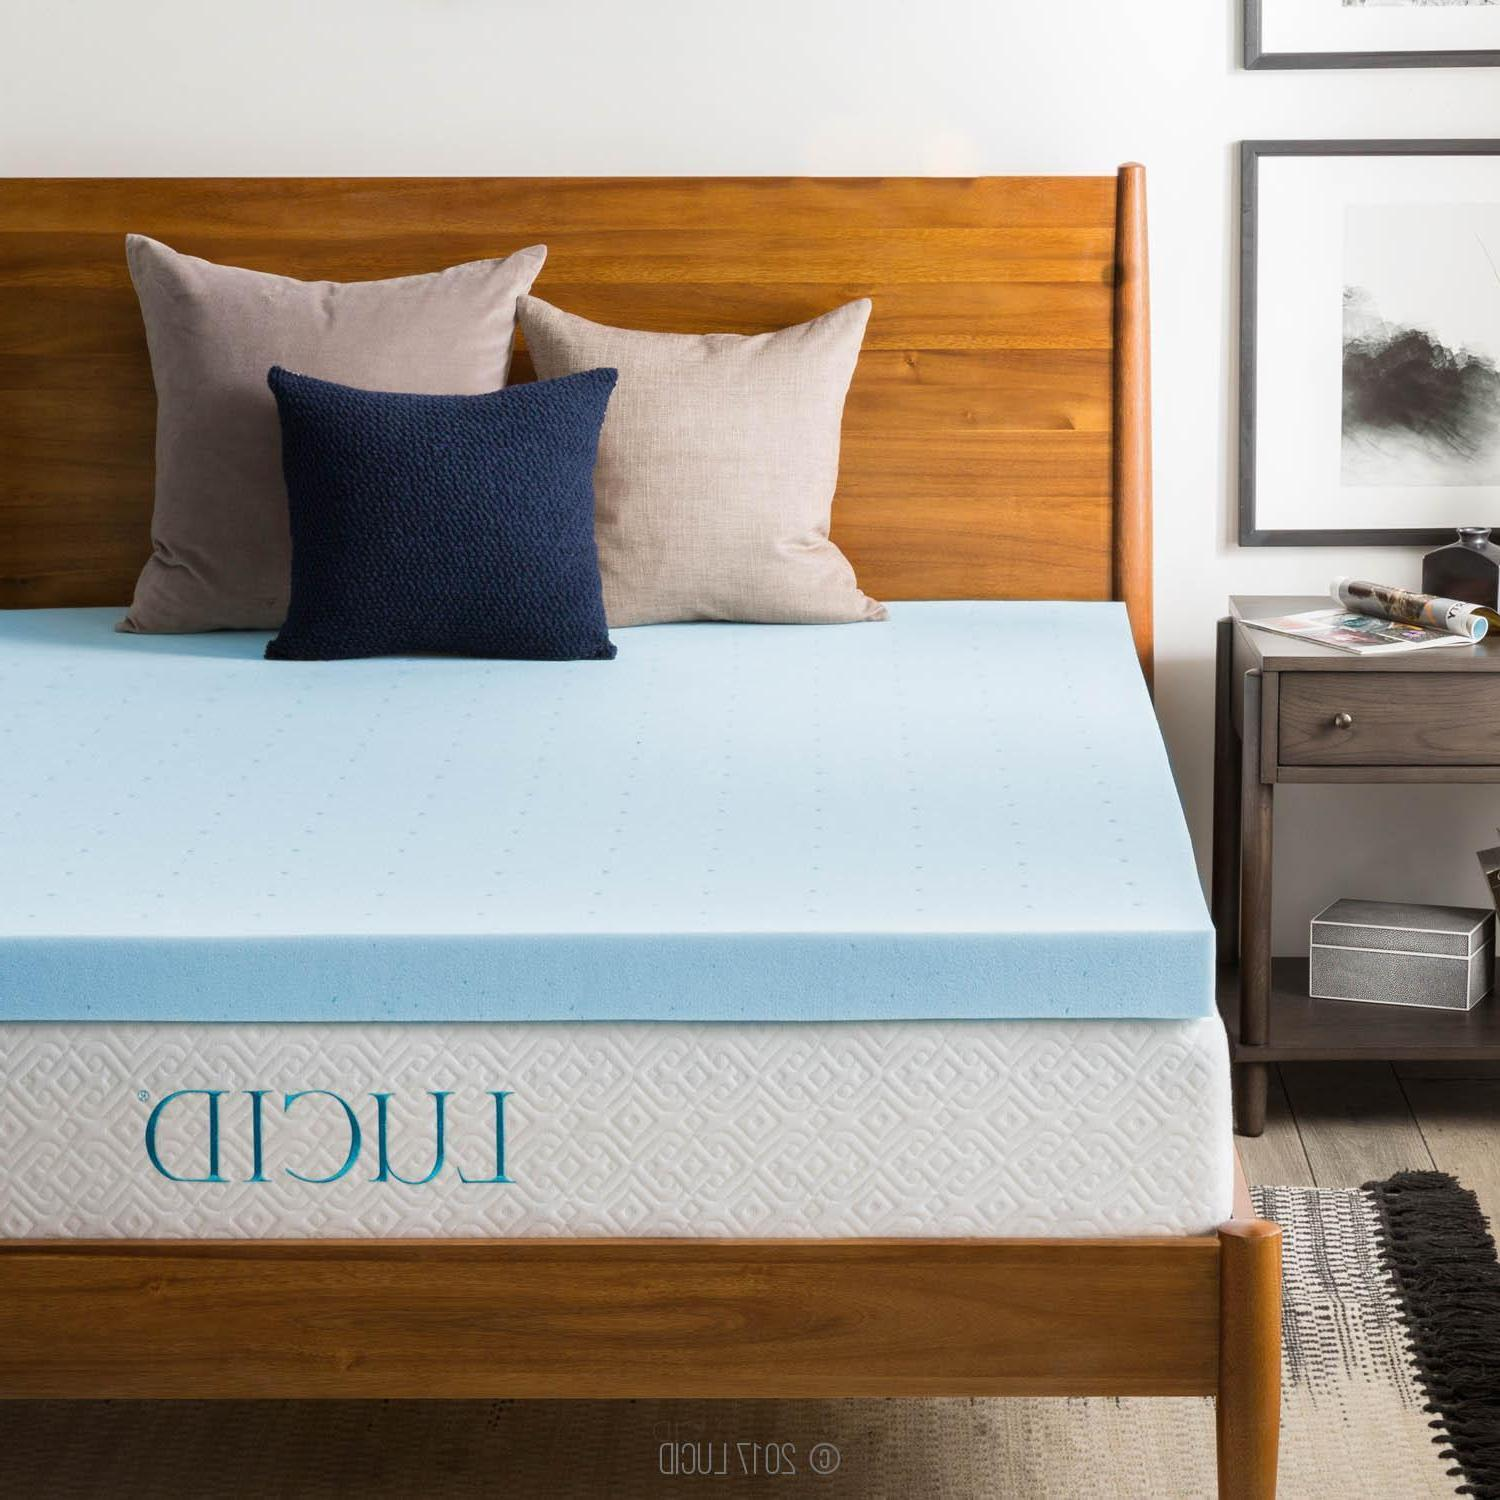 LUCID 3 Inch Cooling Gel Memory Foam Mattress Topper - Soft,